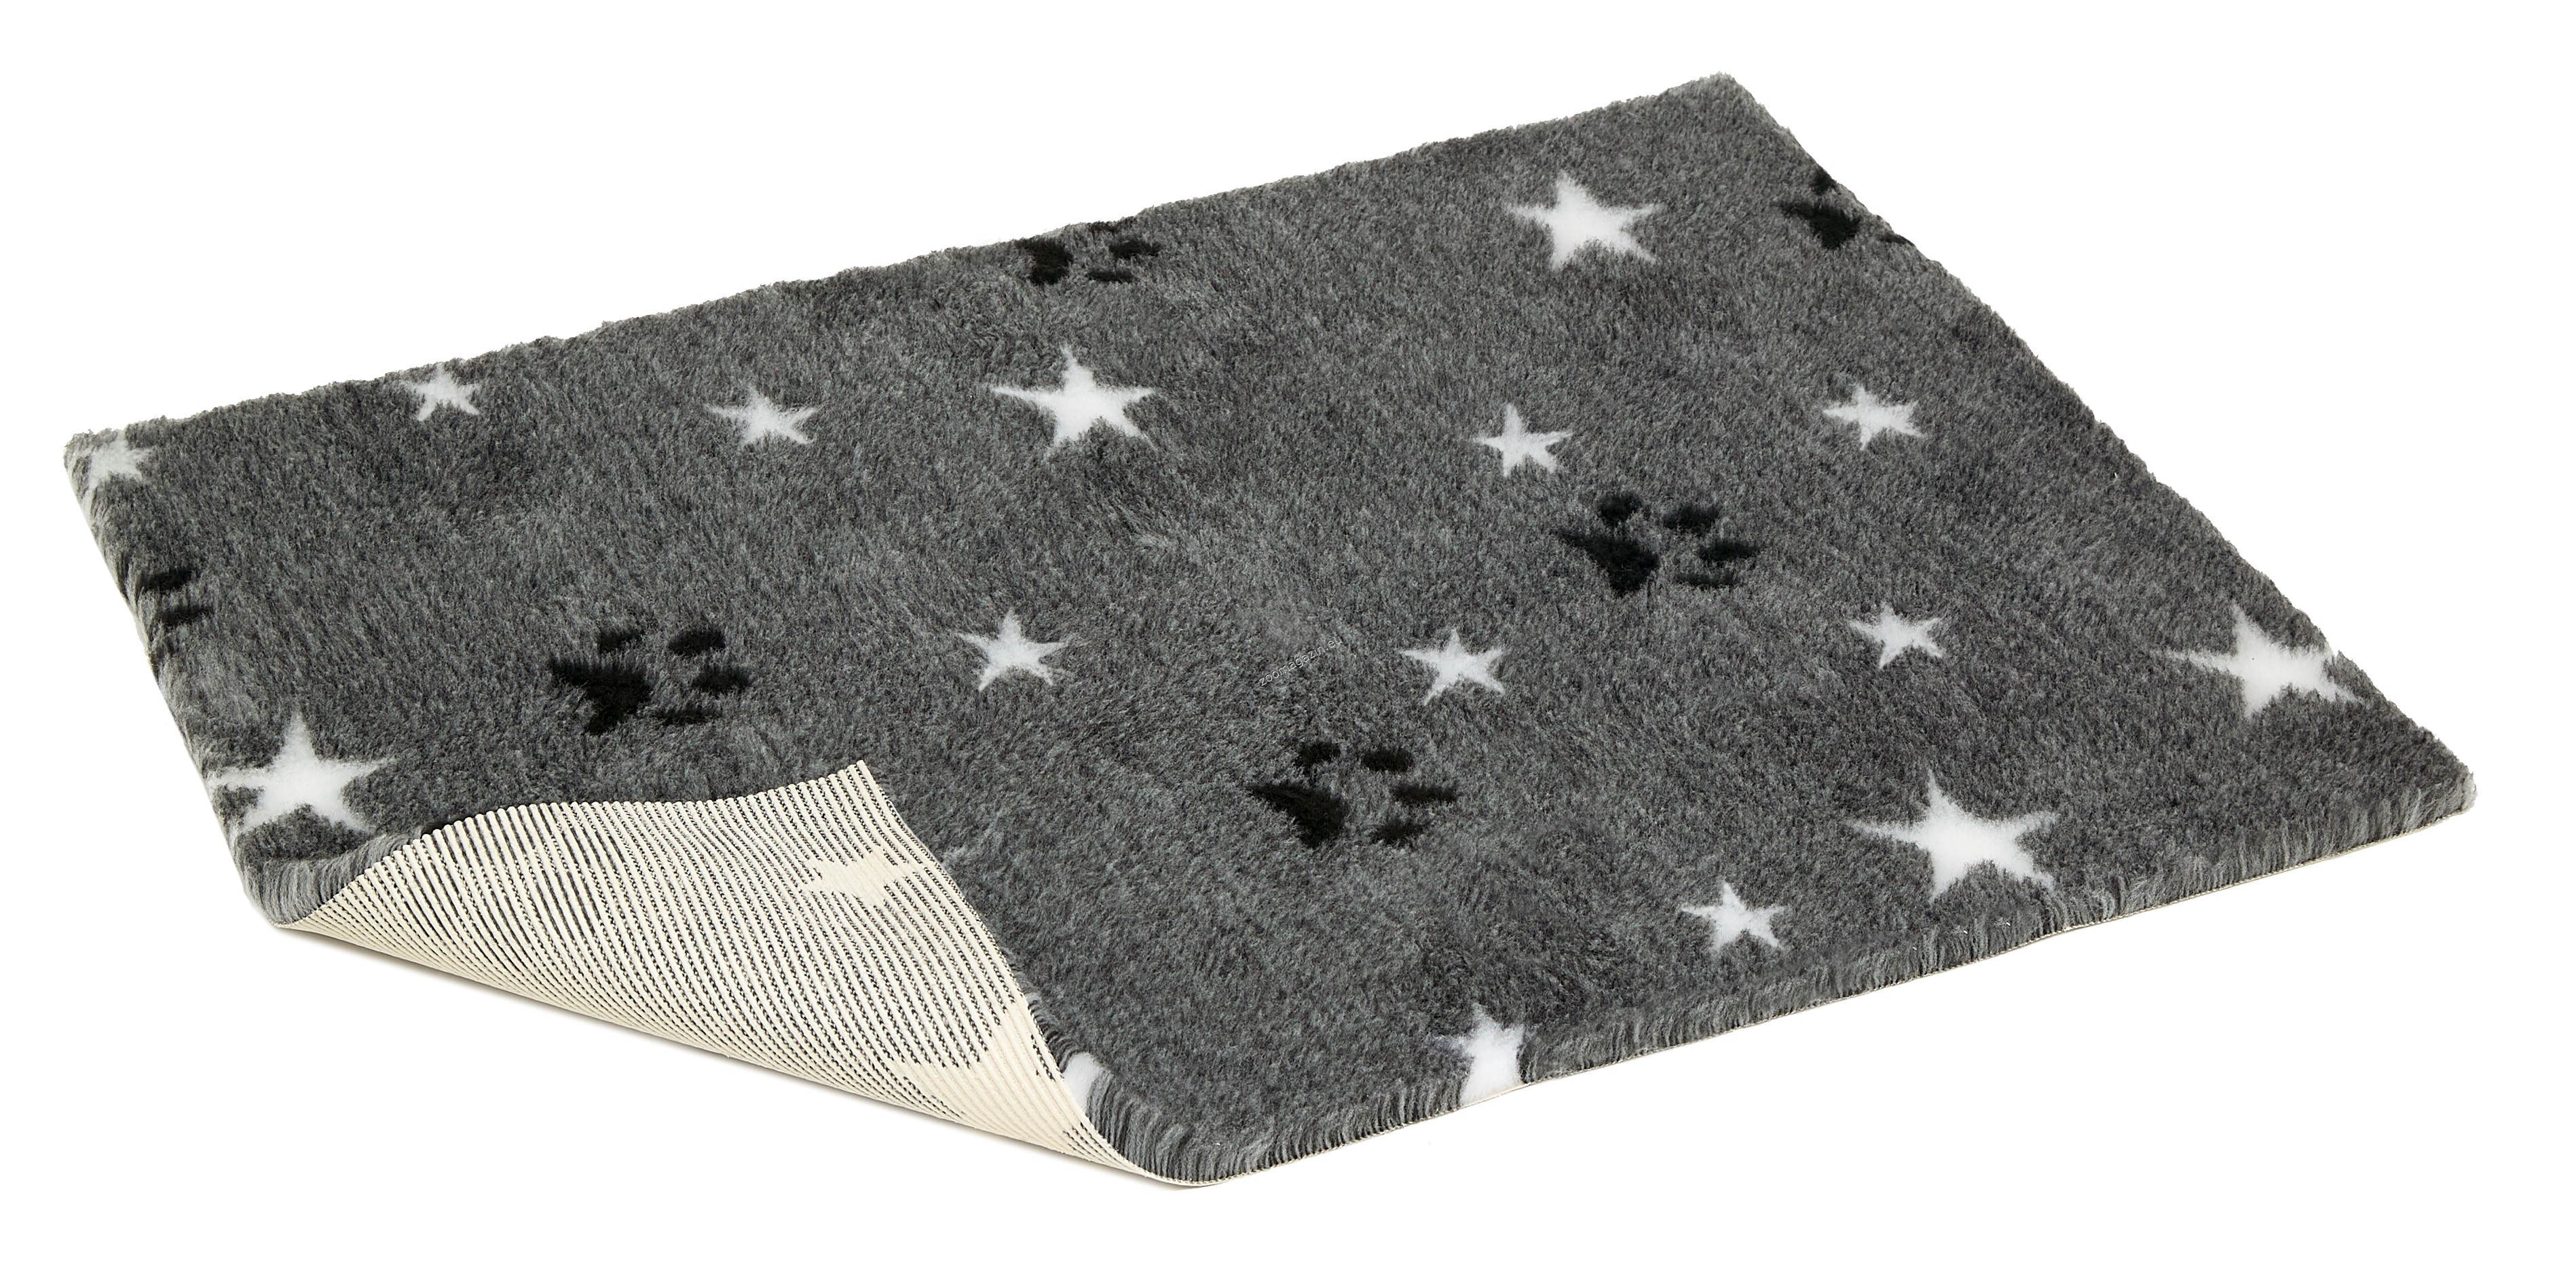 Vetbed Non-Slip Lime Grey with Stars and Paws - мека постелка със слой против пързаляне 100 / 75 см.